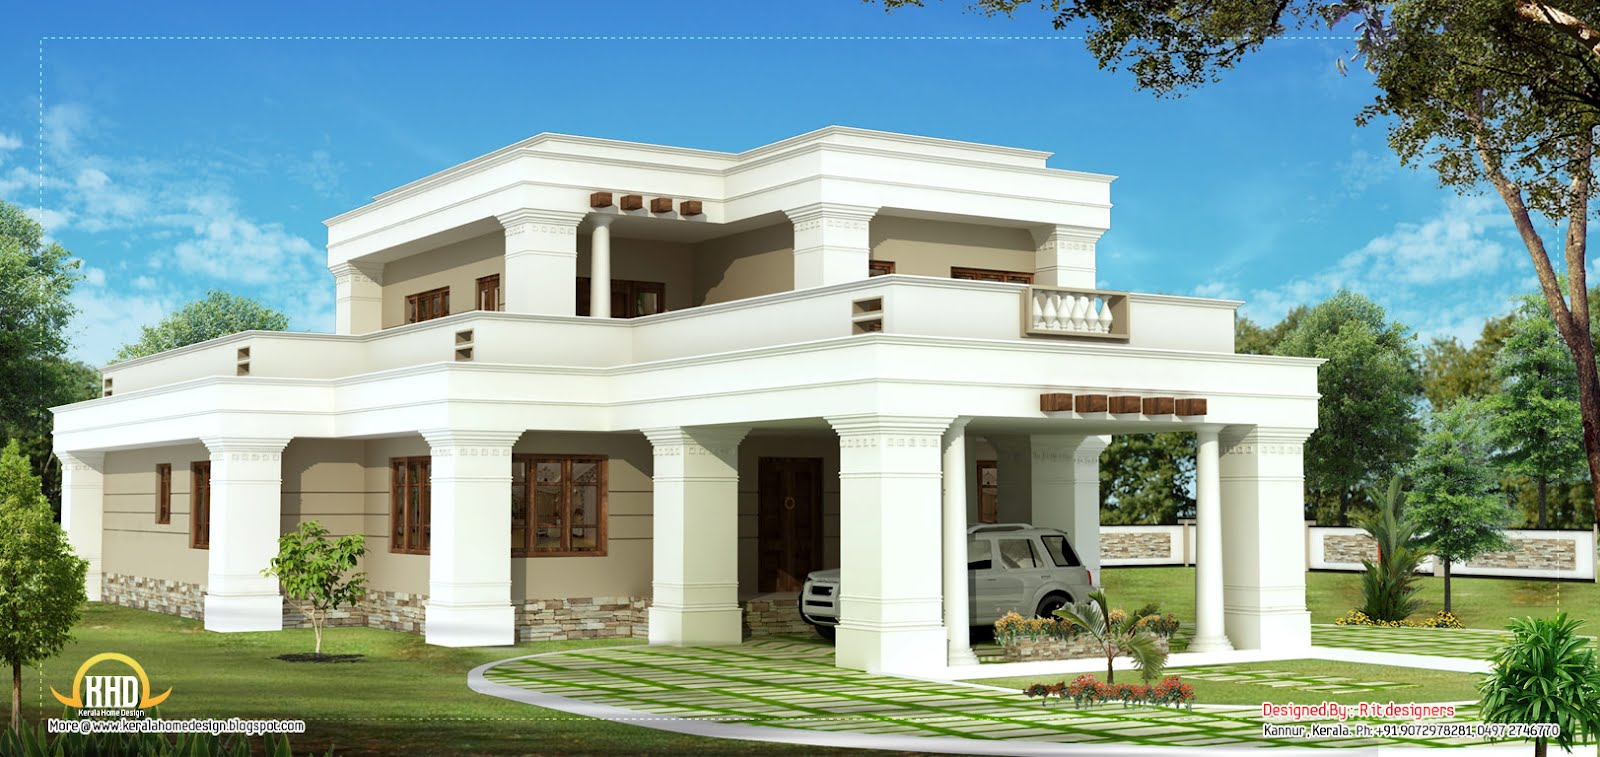 Double story square home design - 2615 Sq. Ft. | Home Sweet Home